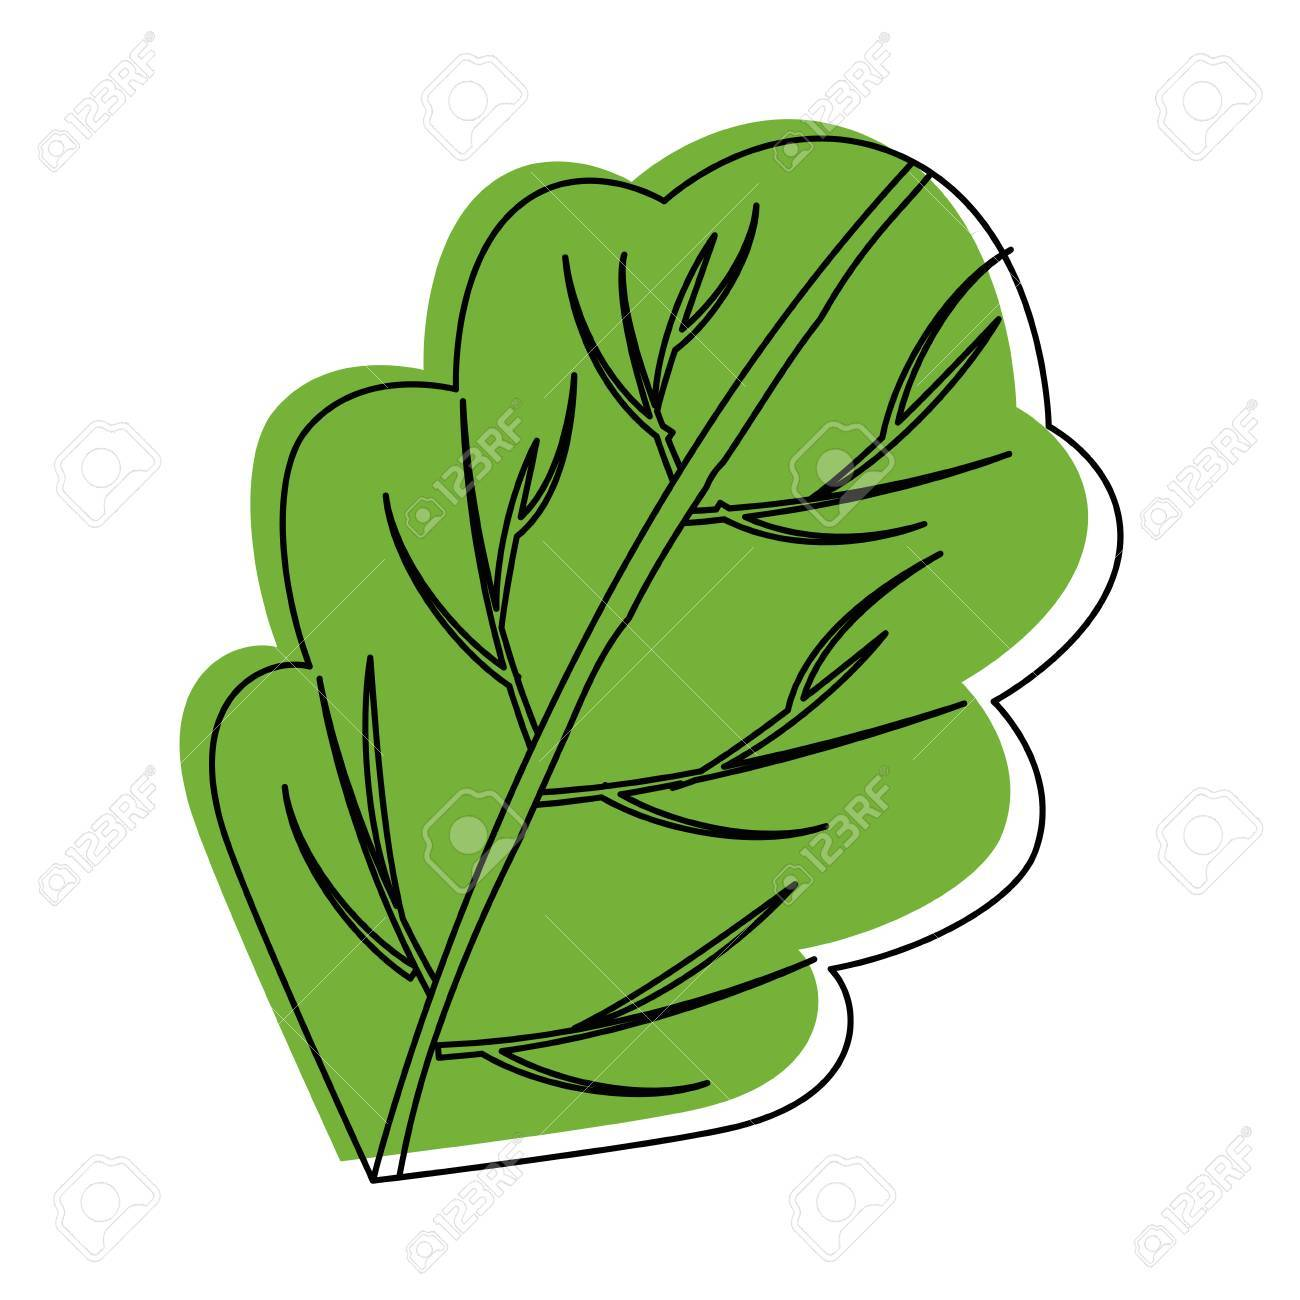 Salad leaf clipart clipart black and white download Lettuce Leaf Drawing | Free download best Lettuce Leaf ... clipart black and white download